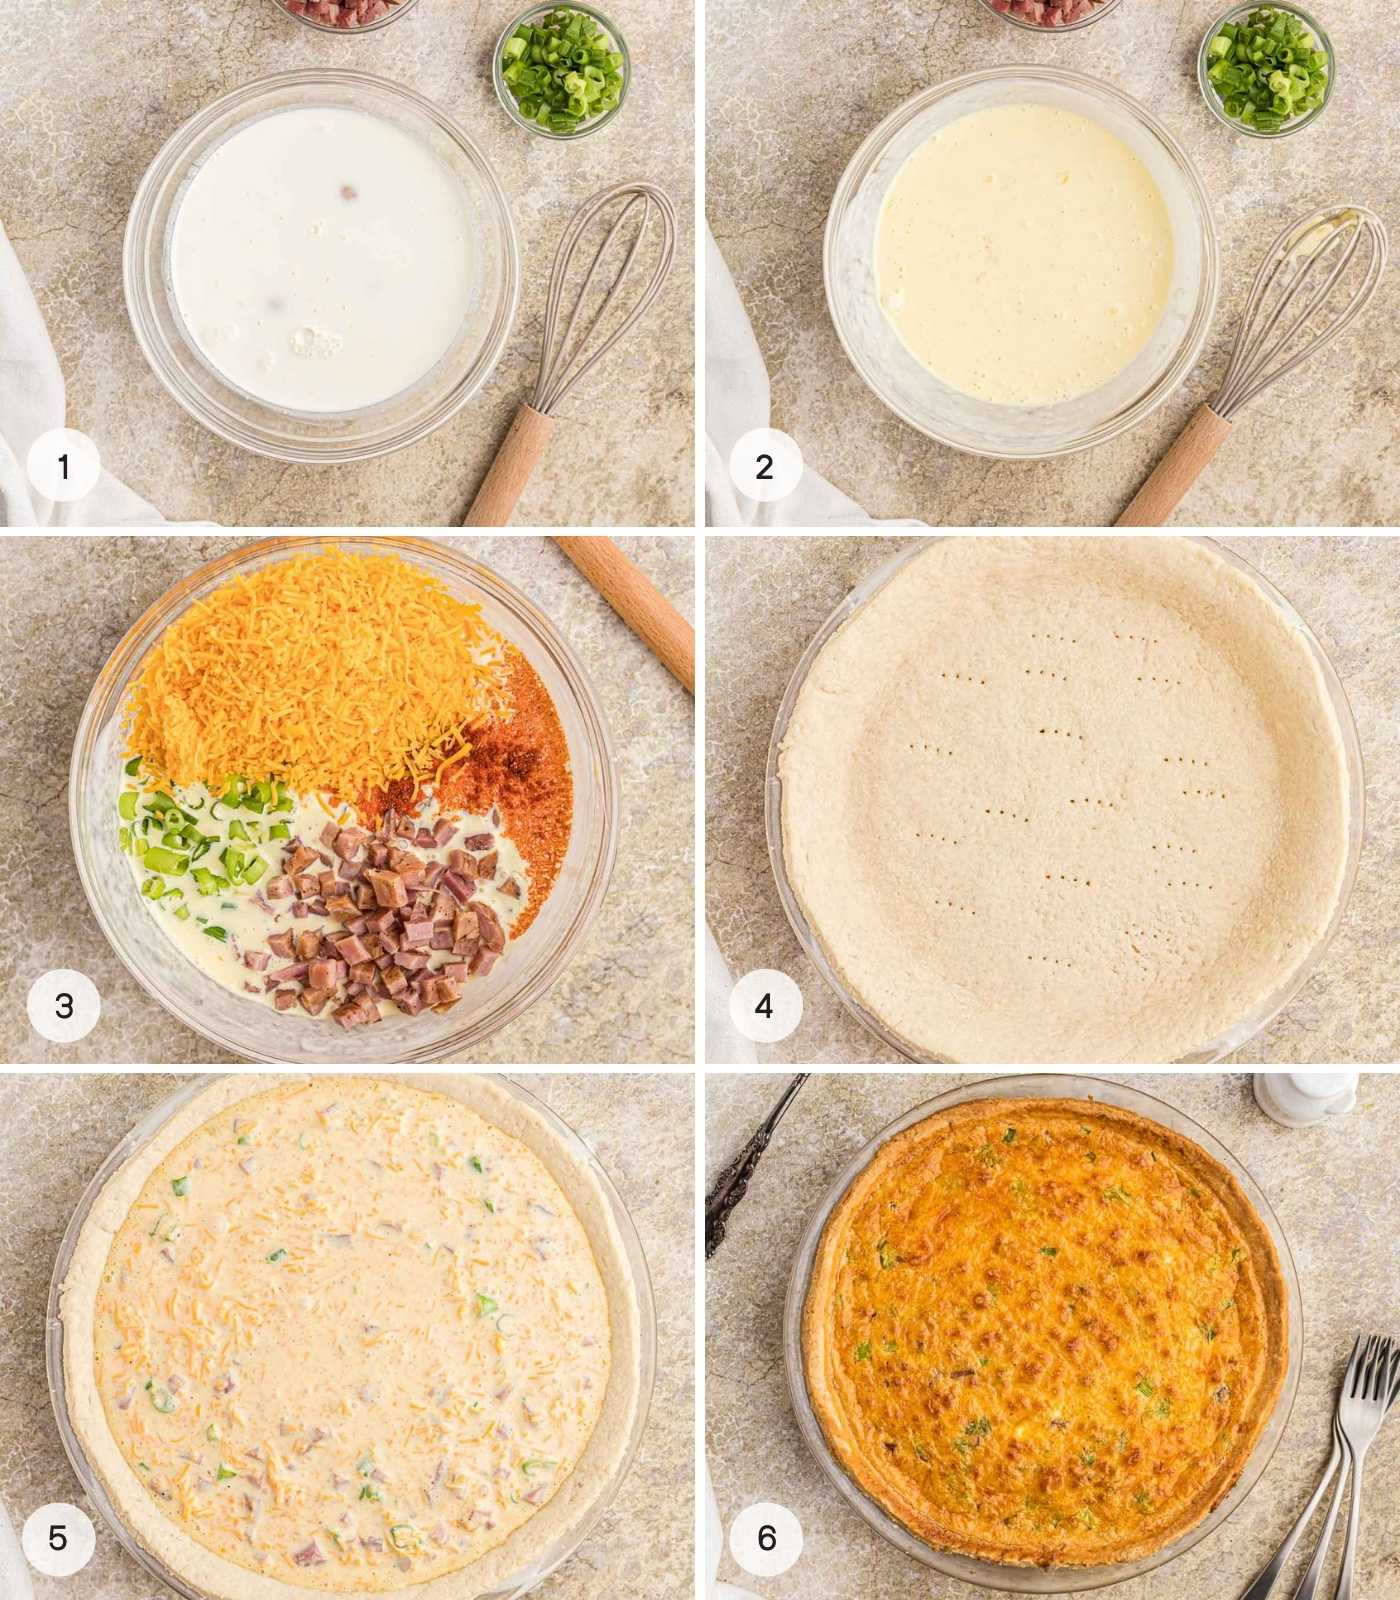 A collage with 6 images showing steps how to make cheese and ham quiche